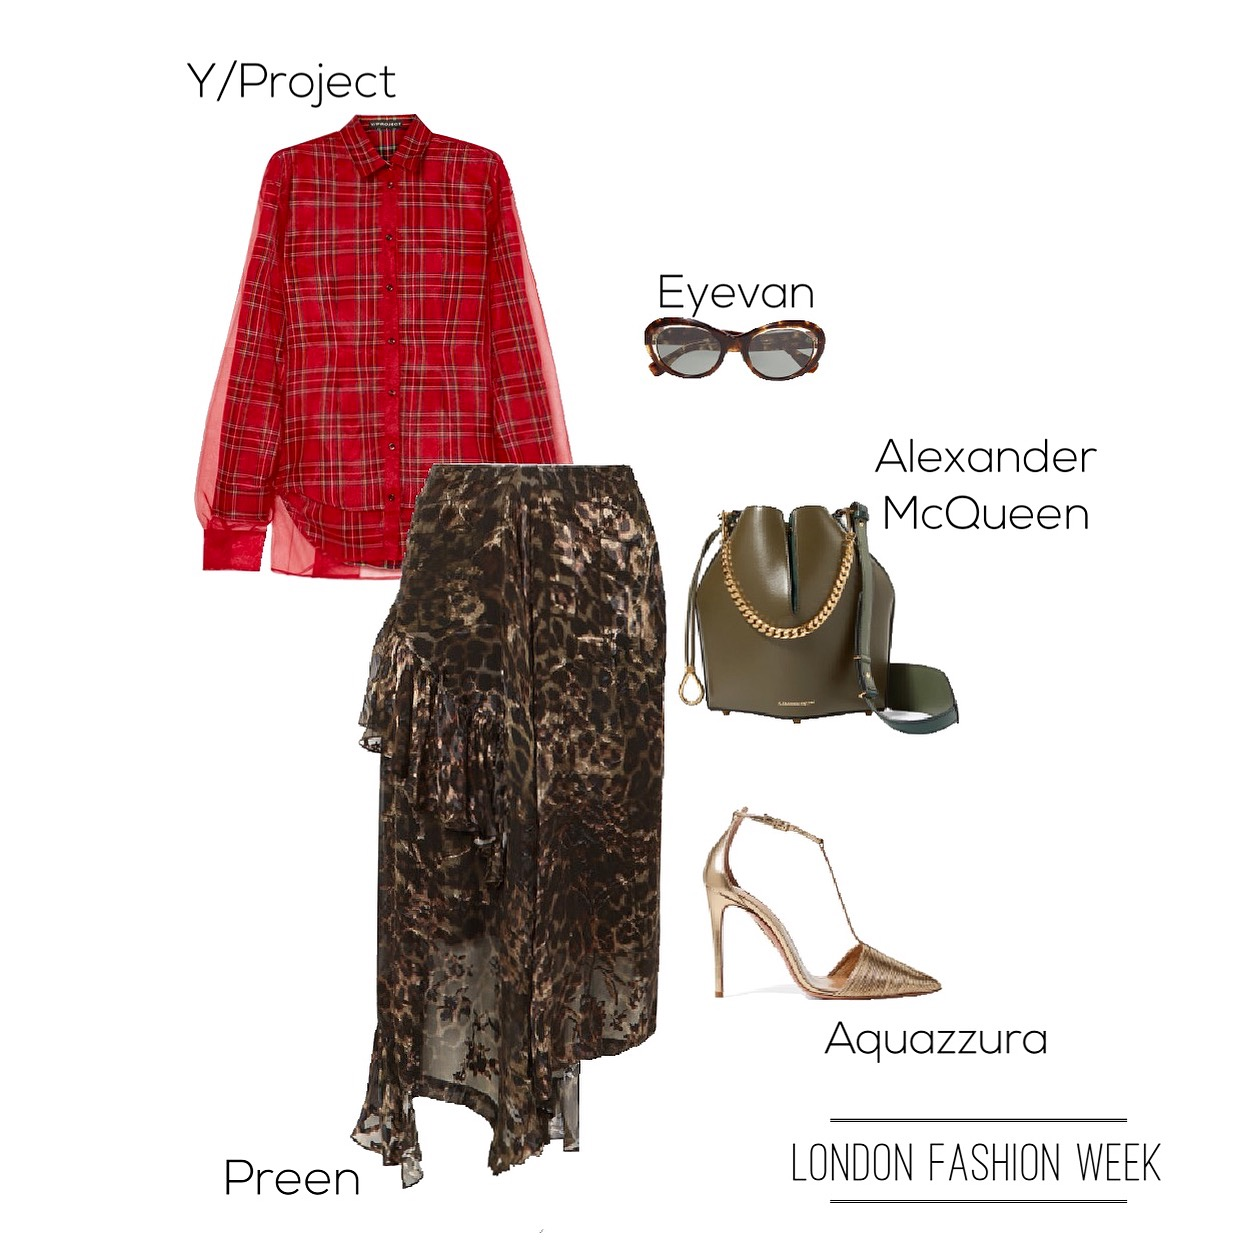 LONDON FASHION WEEK STYLE INSPIRATION!